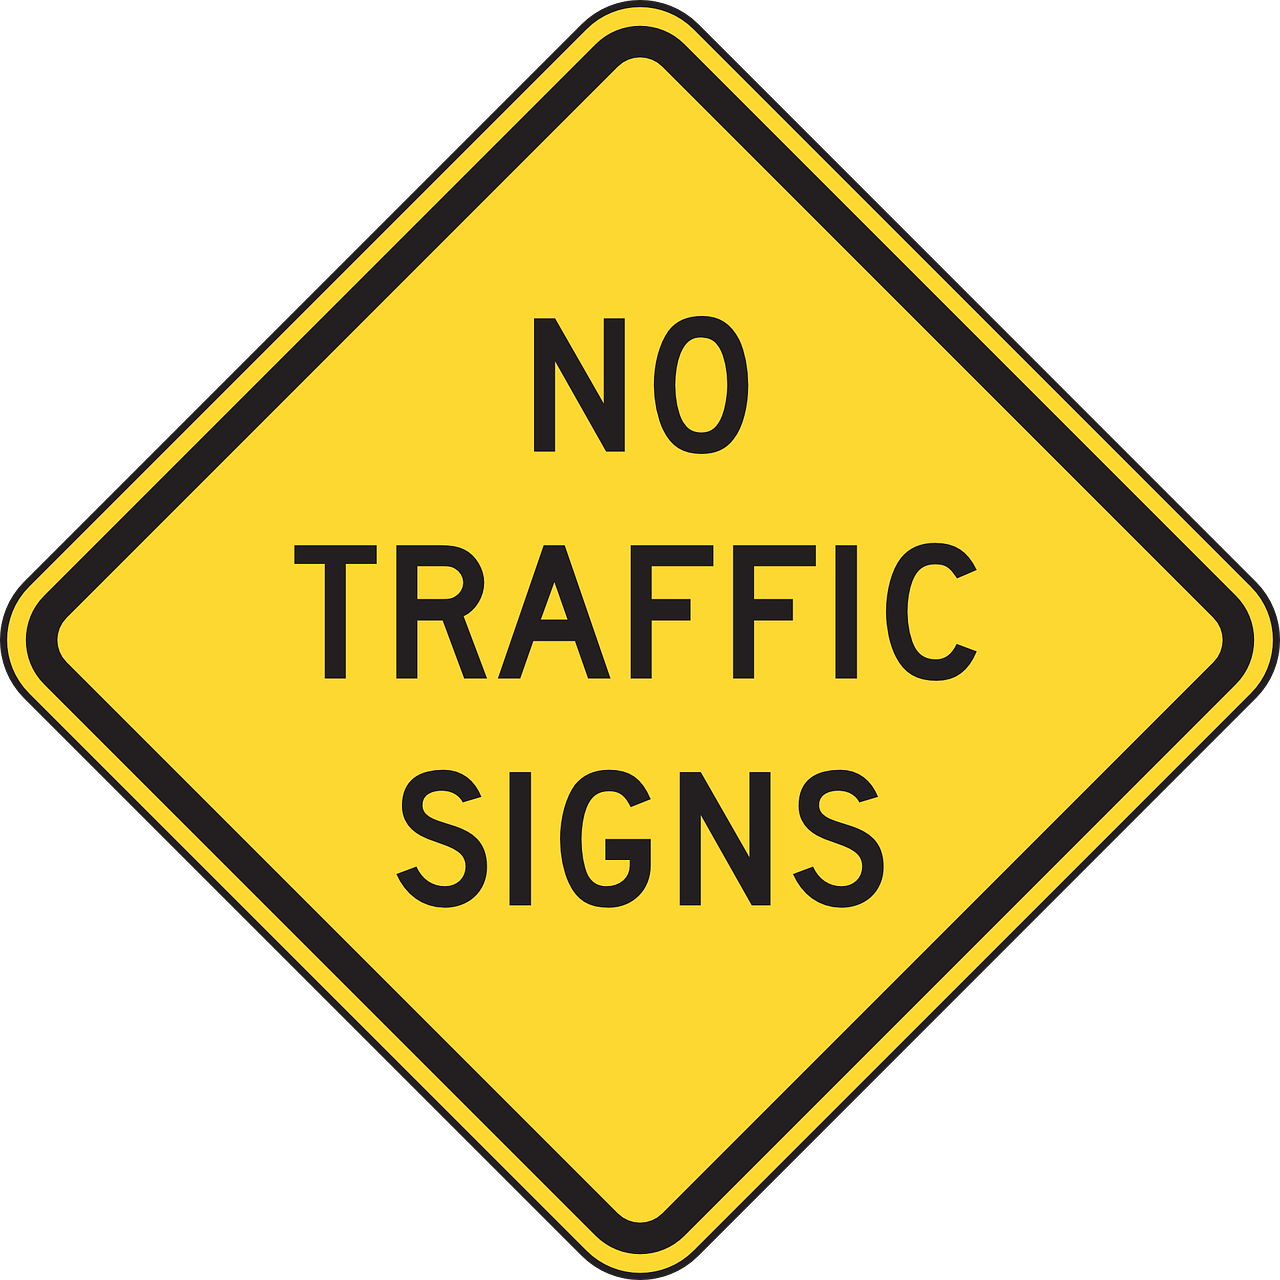 no-traffic-signs-44320_1280